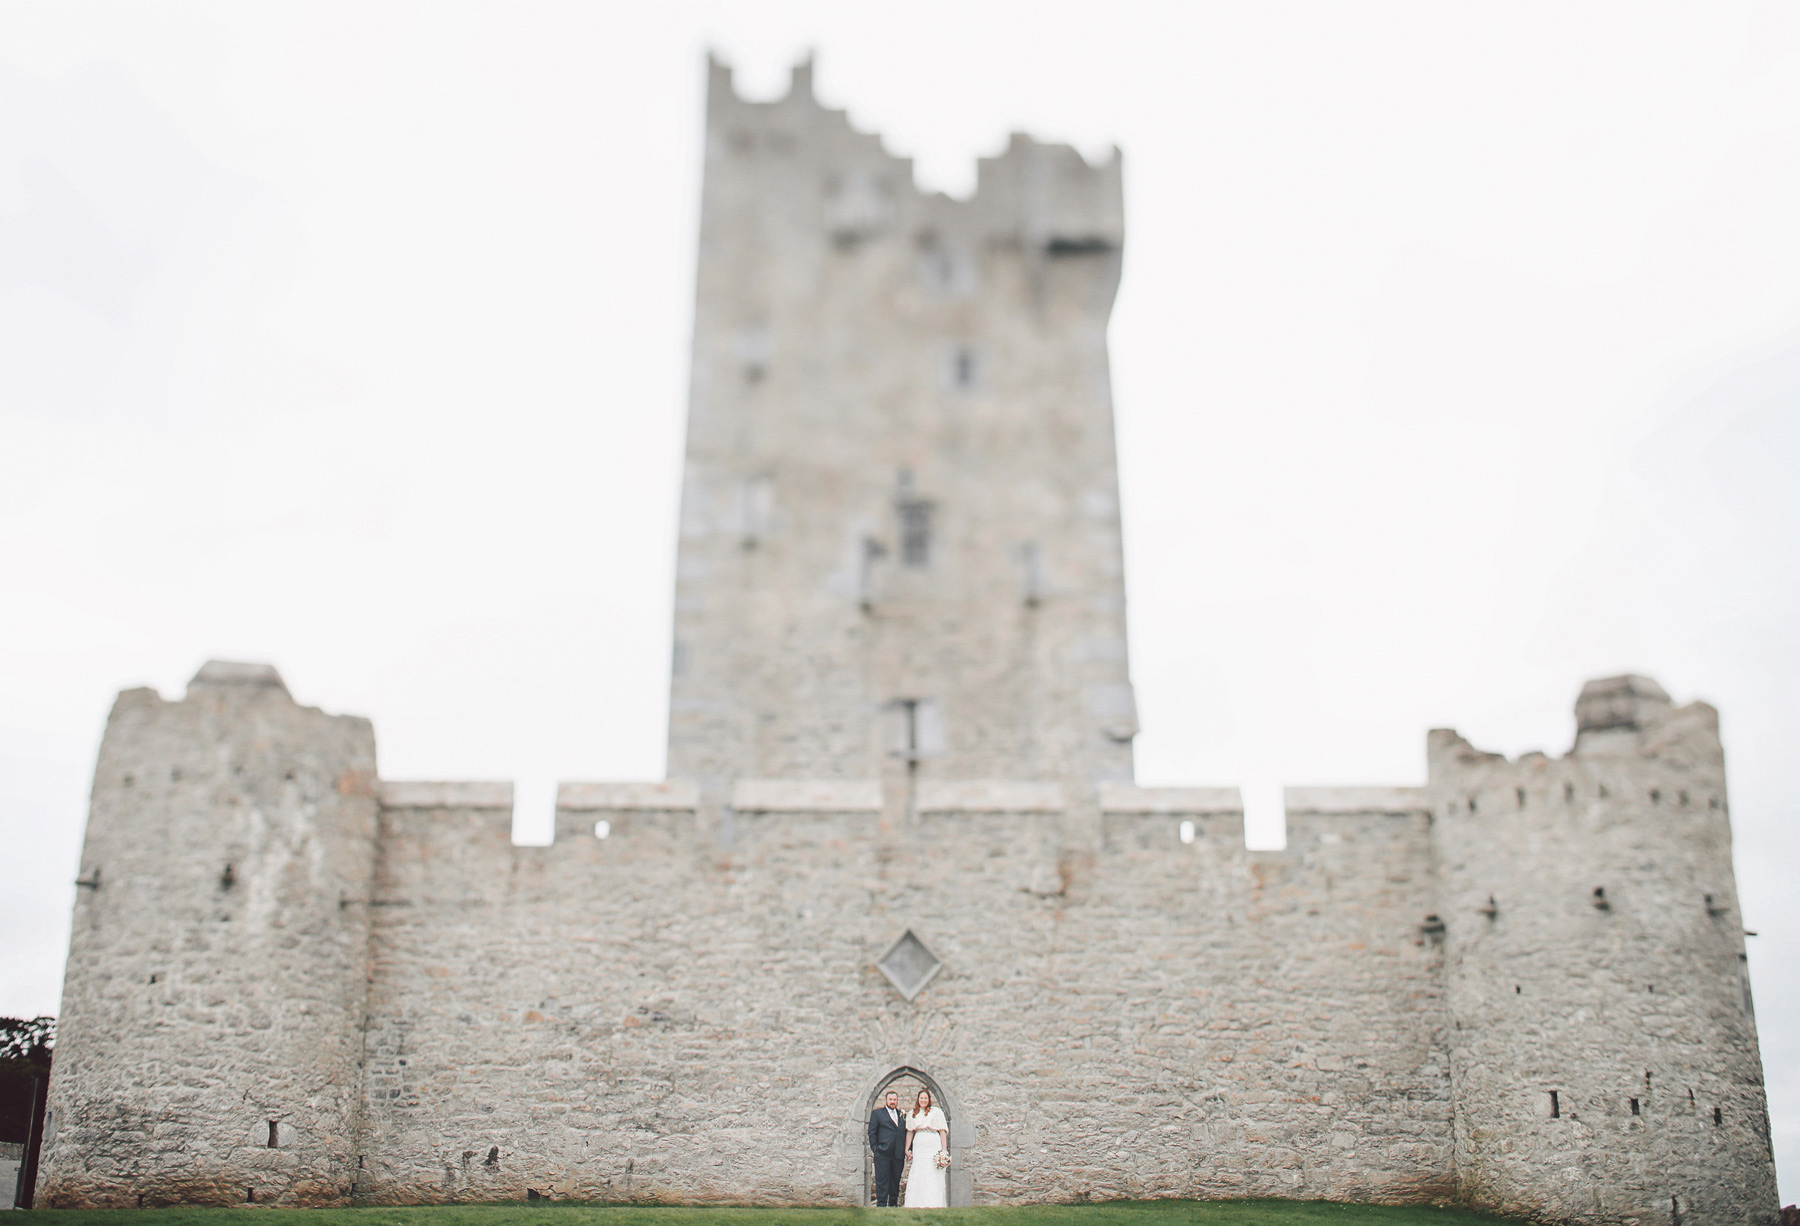 28-Kilarney-Ireland-Wedding-Photographer-by-Andrew-Vick-Photography-Fall-Autumn-Destination-Ross-Castle-First-Meeting-Look-Bride-Groom-Ruins-Vintage-Becca-and-Donal.jpg